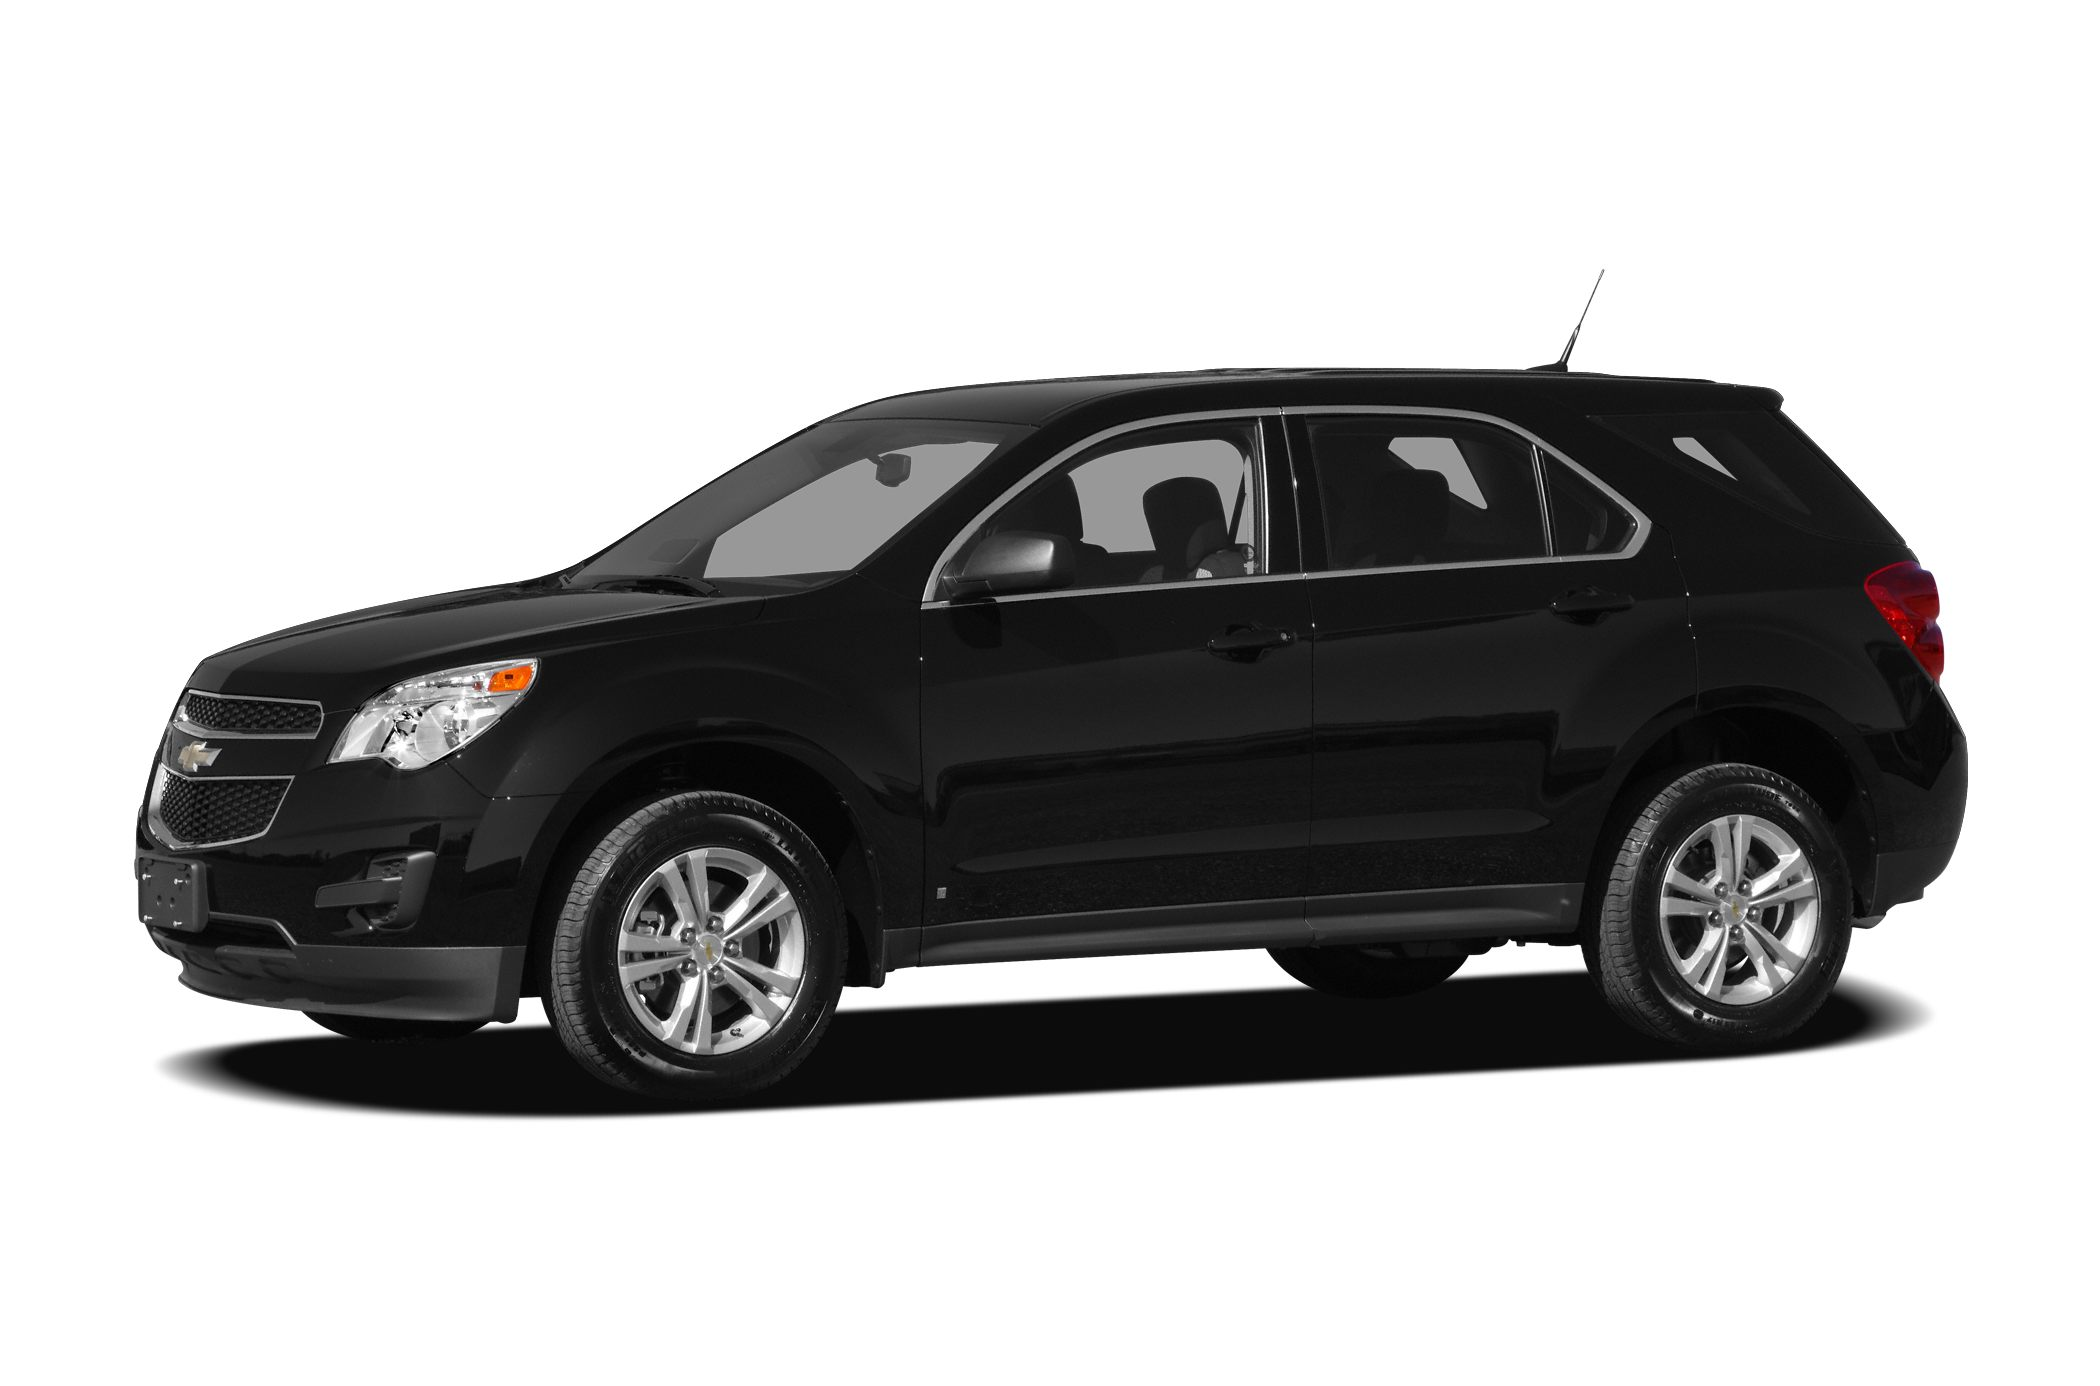 2011 Chevrolet Equinox LTZ SUV for sale in Greeley for $20,000 with 41,036 miles.